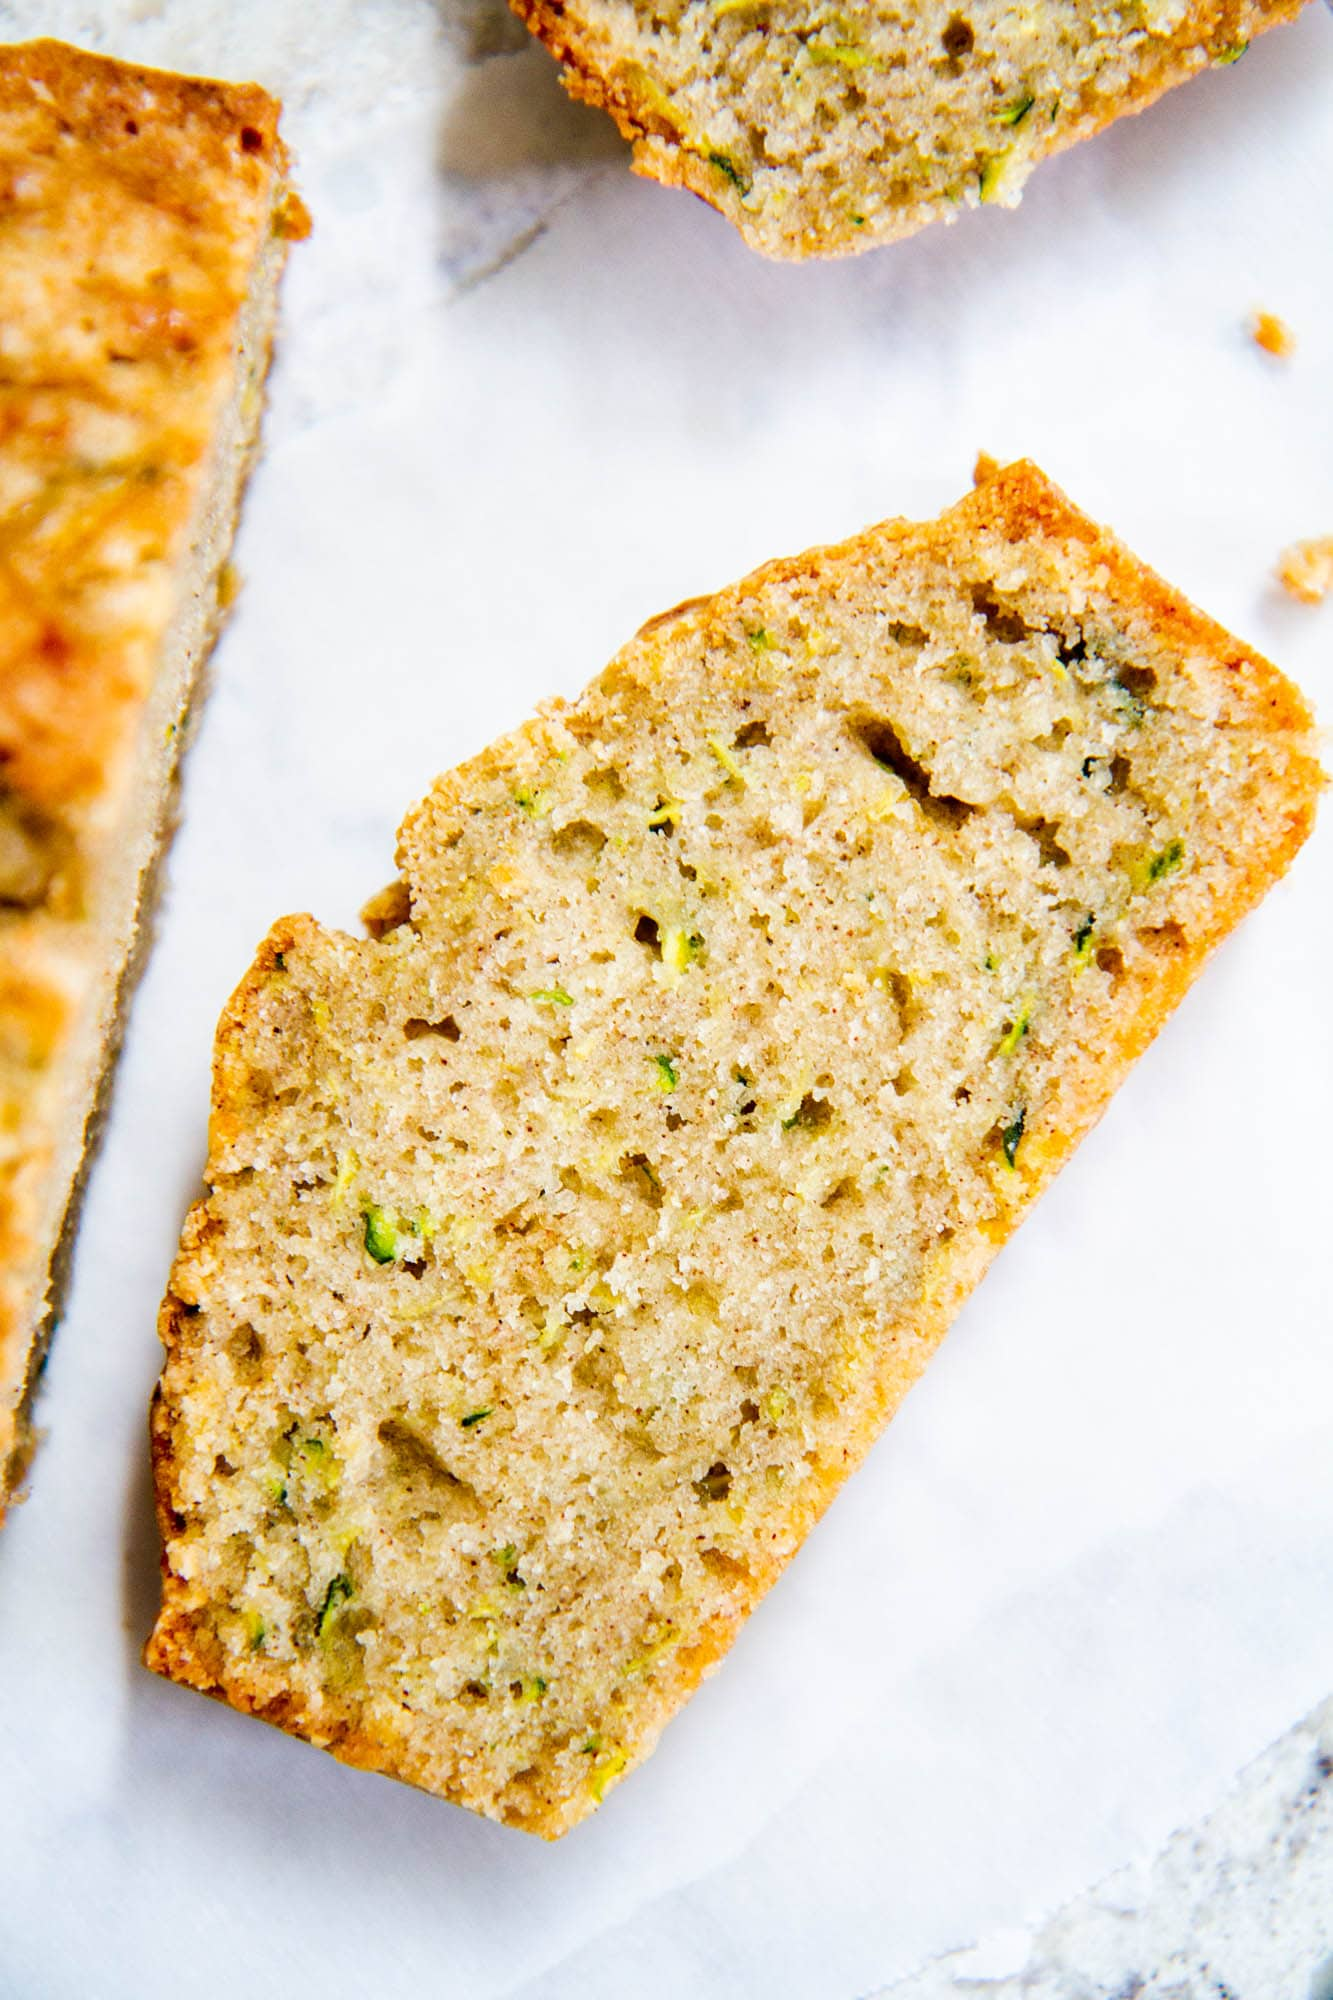 slice of zucchini bread